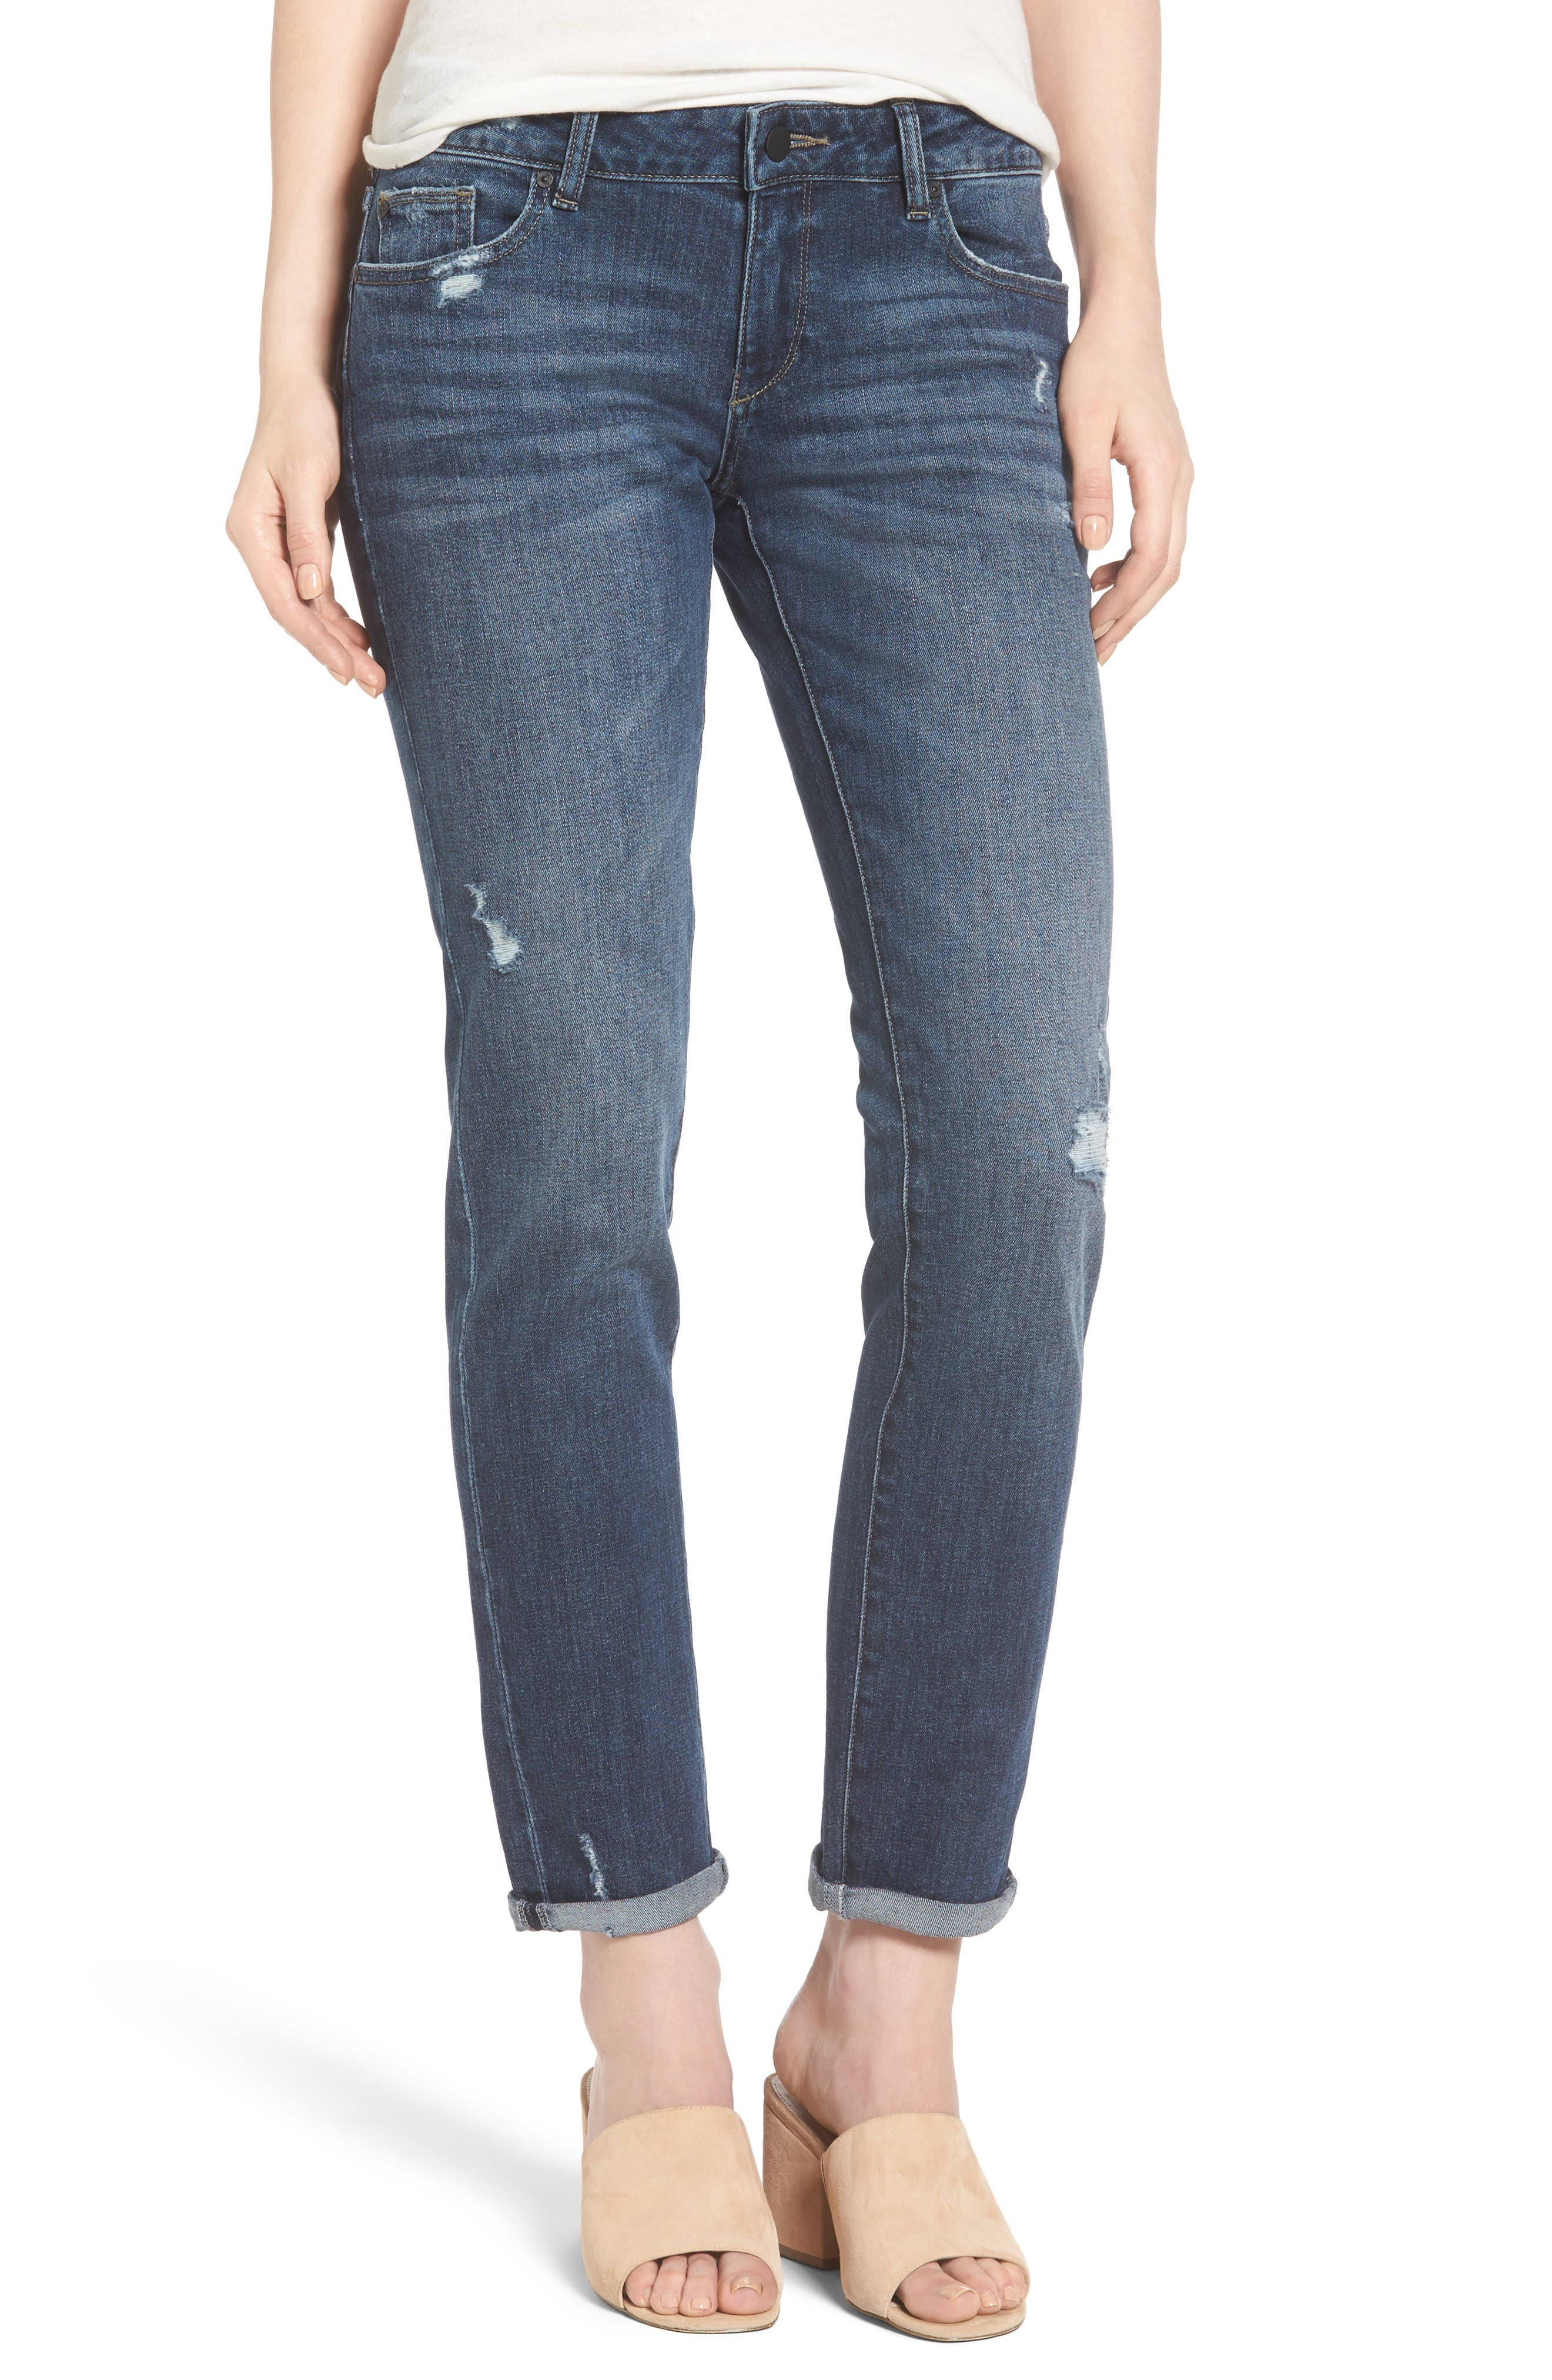 Alternate Image 1 Selected - DL1961 Riley Boyfriend Jeans (Hayden)